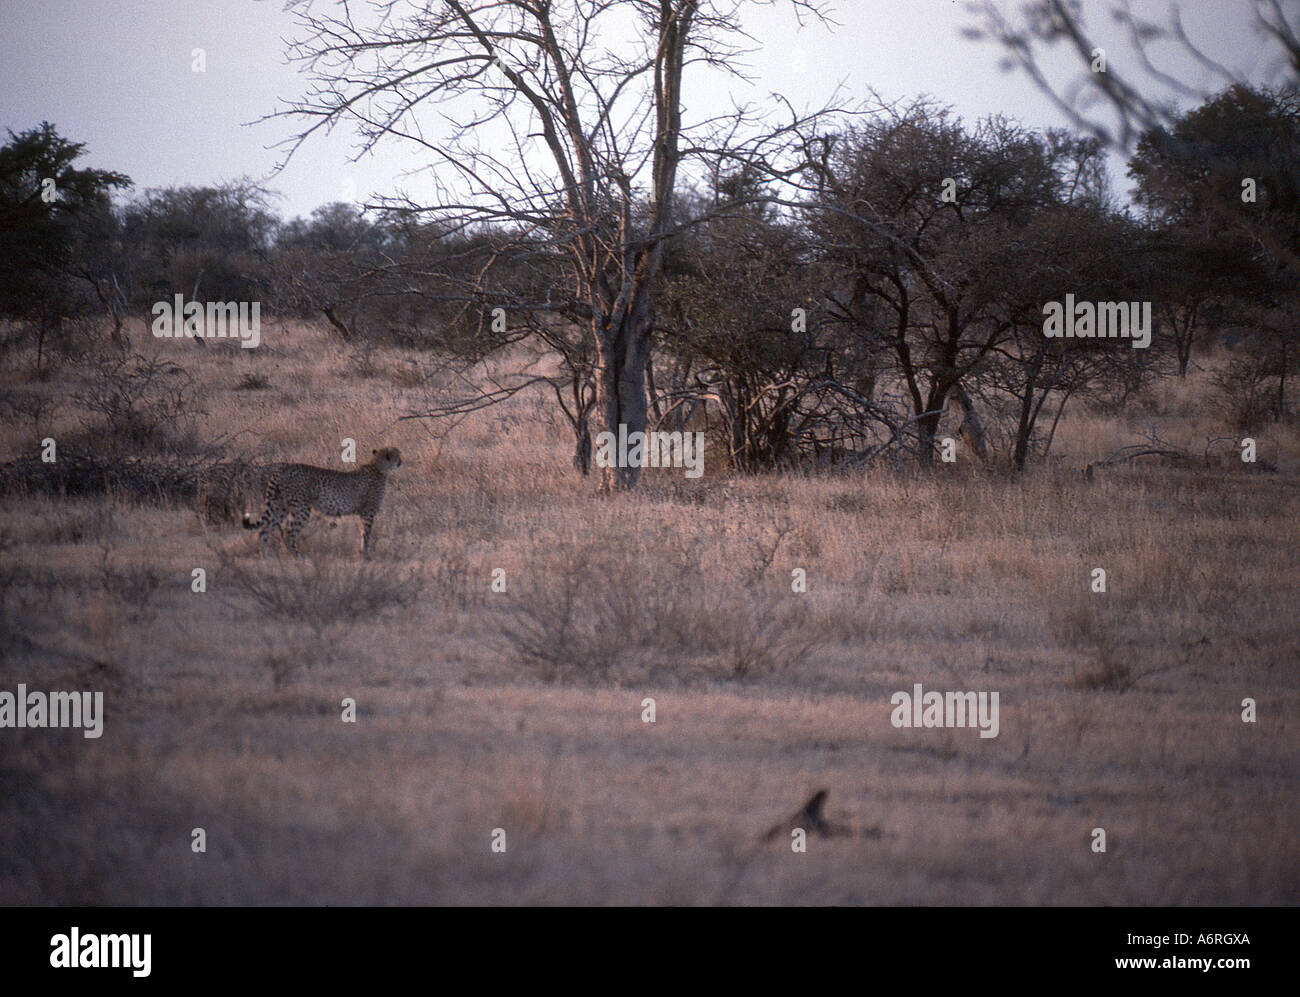 Cheetah Camouflage In Long Grass Kruger Park South Africa